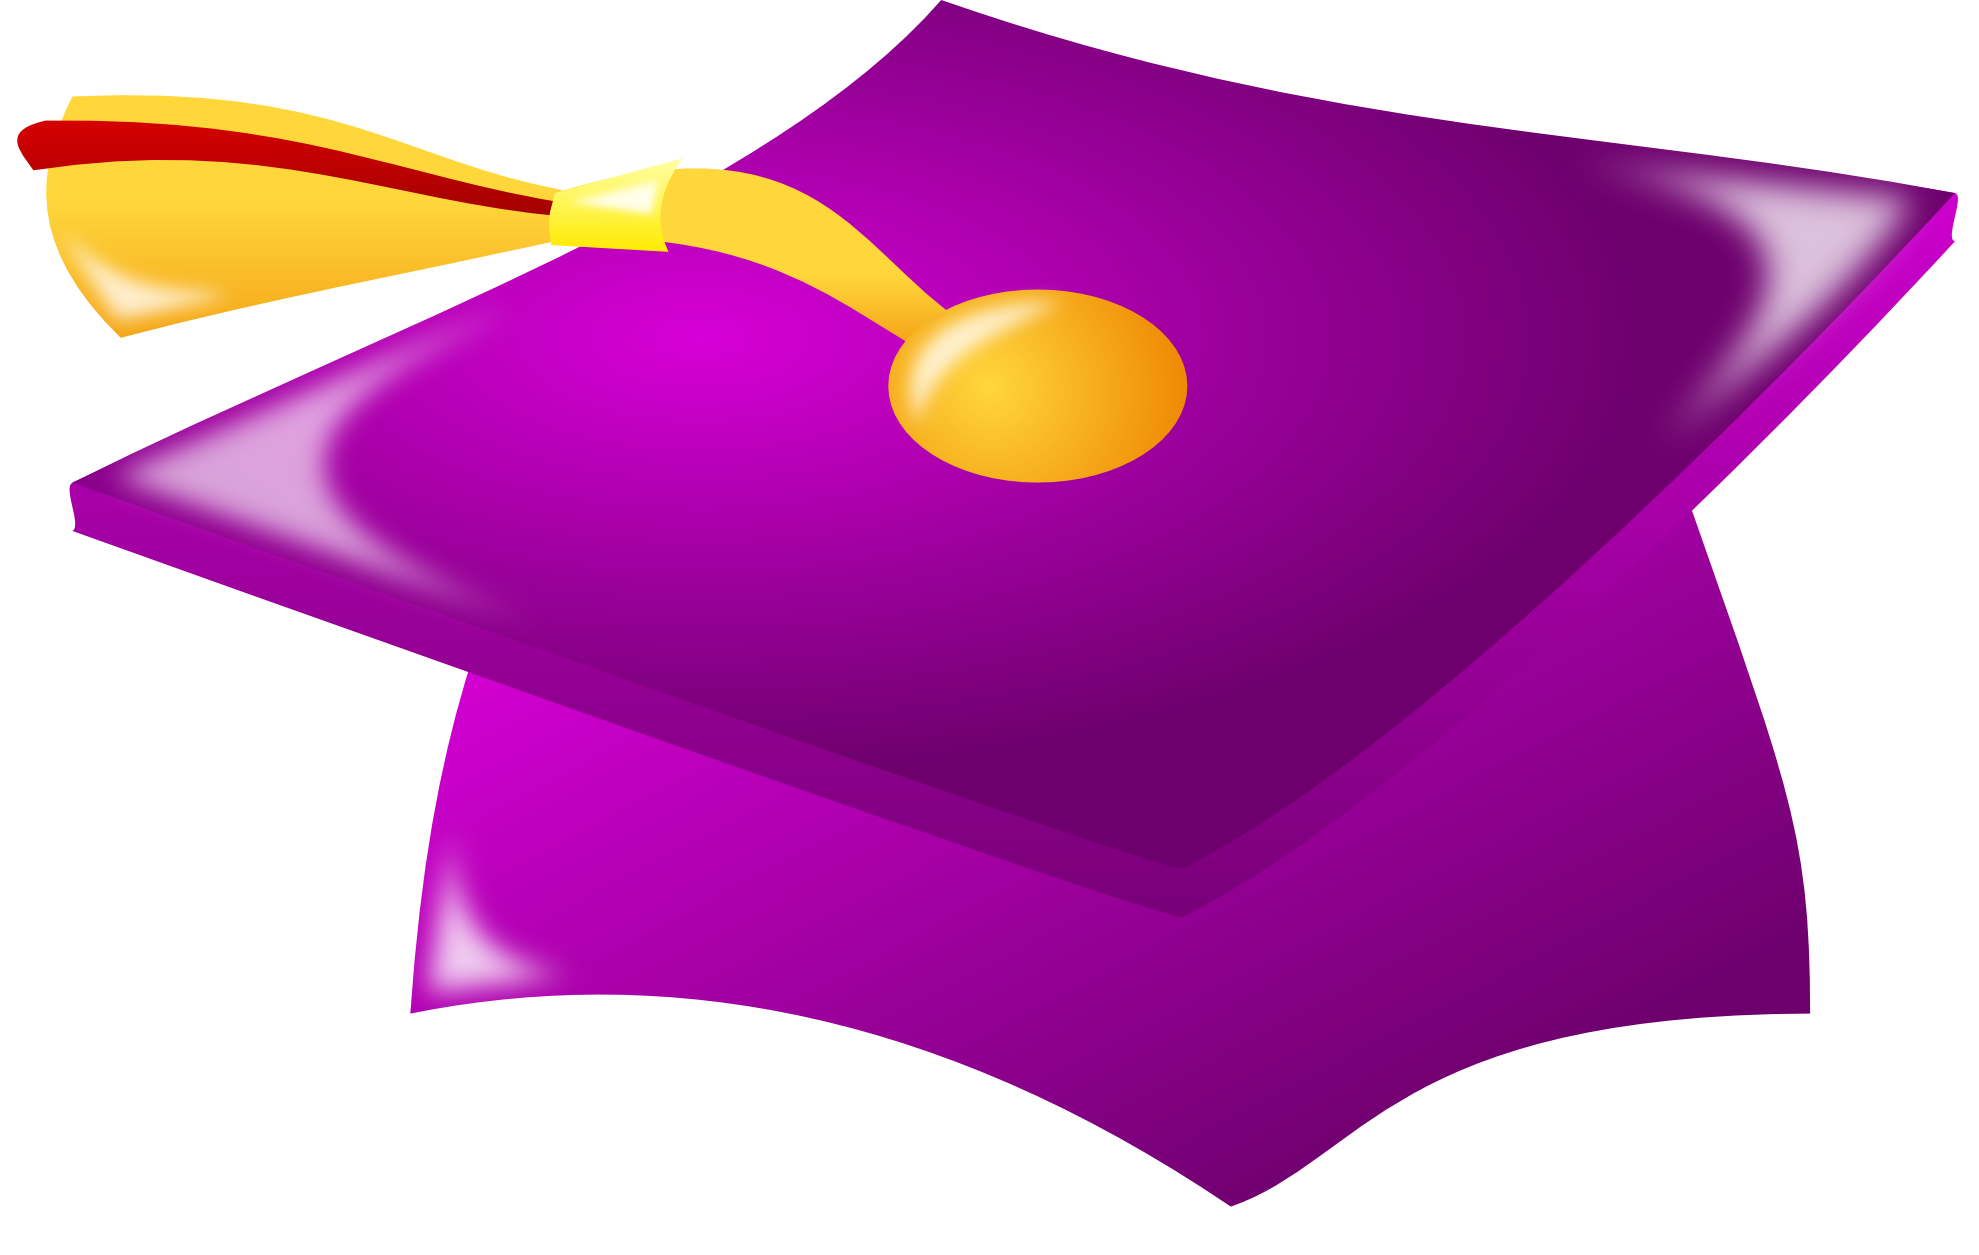 Purple clip art panda. Textbook clipart graduation cap